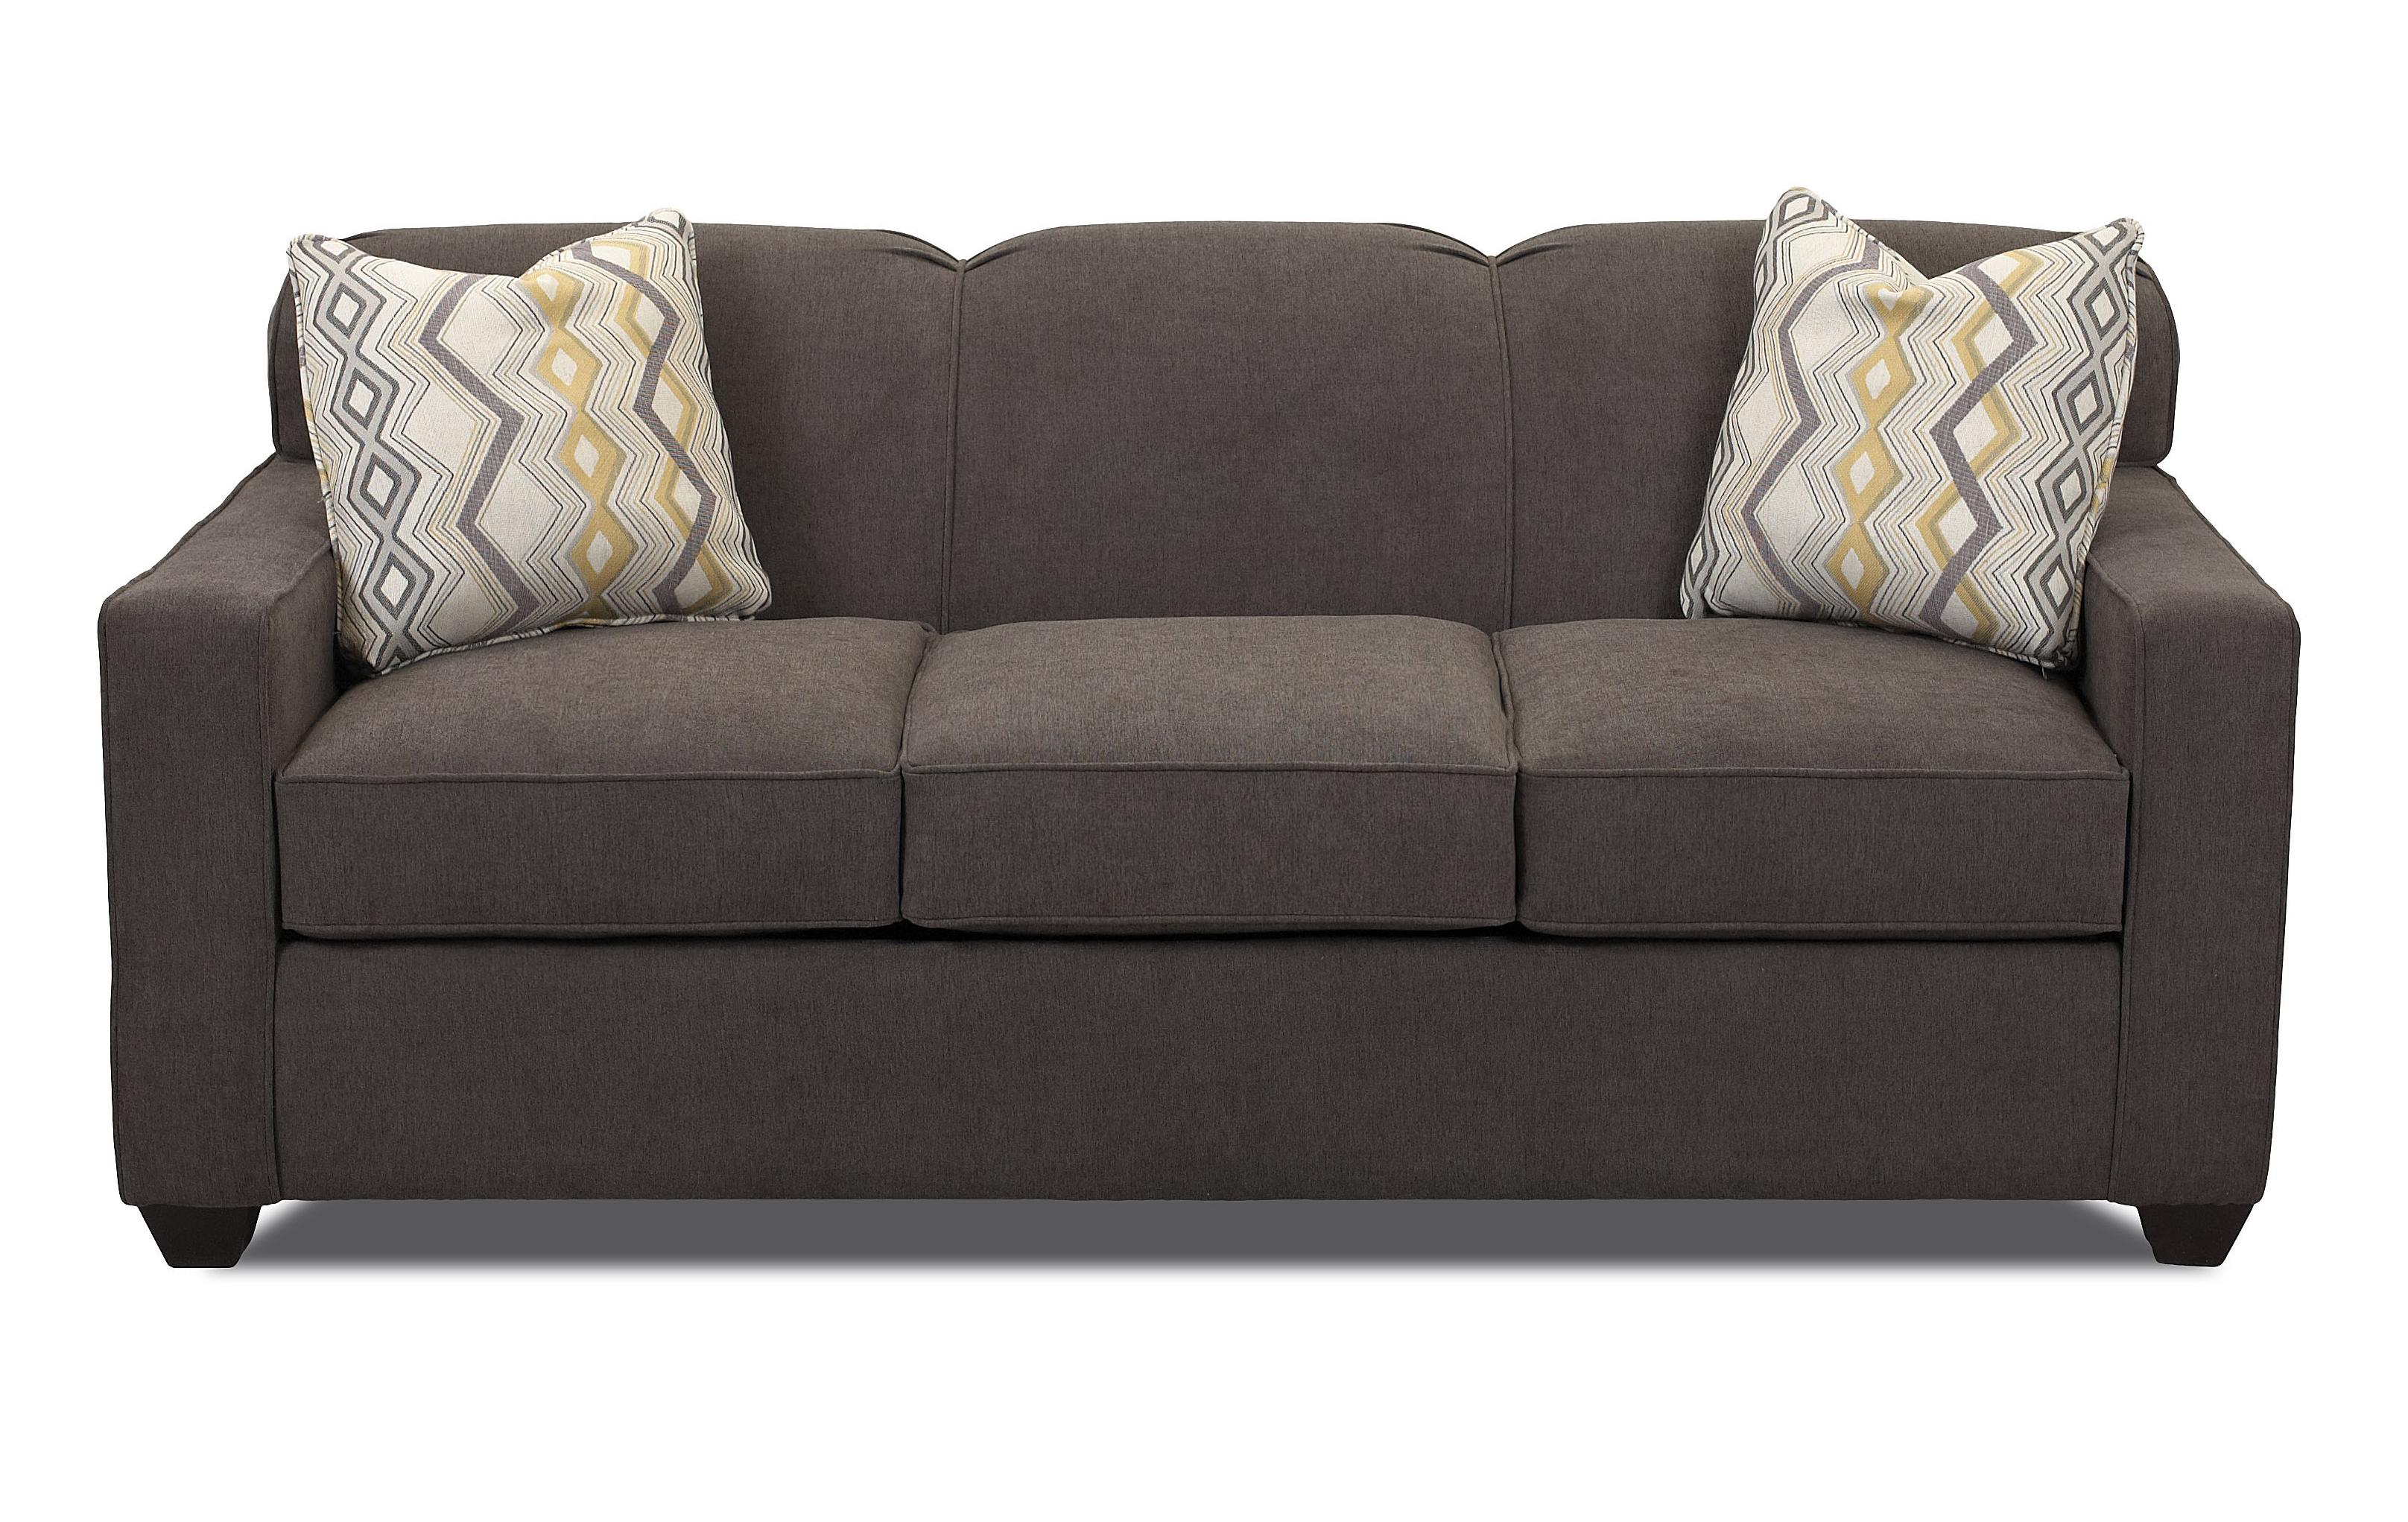 Contemporary Innerspring Queen Sleeper Sofa With Tight